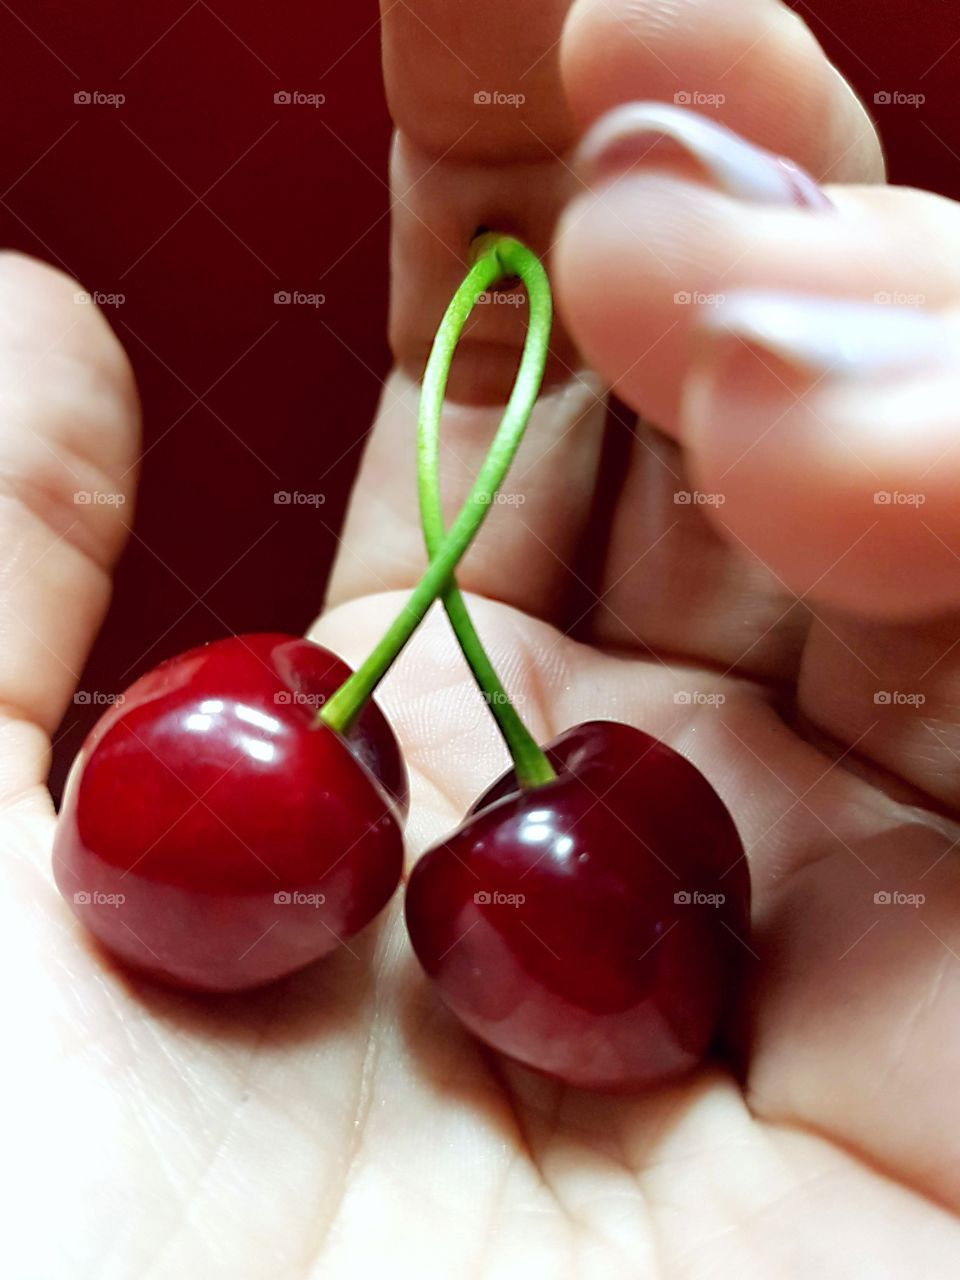 Delicious berries of red cherry in a woman's hand.